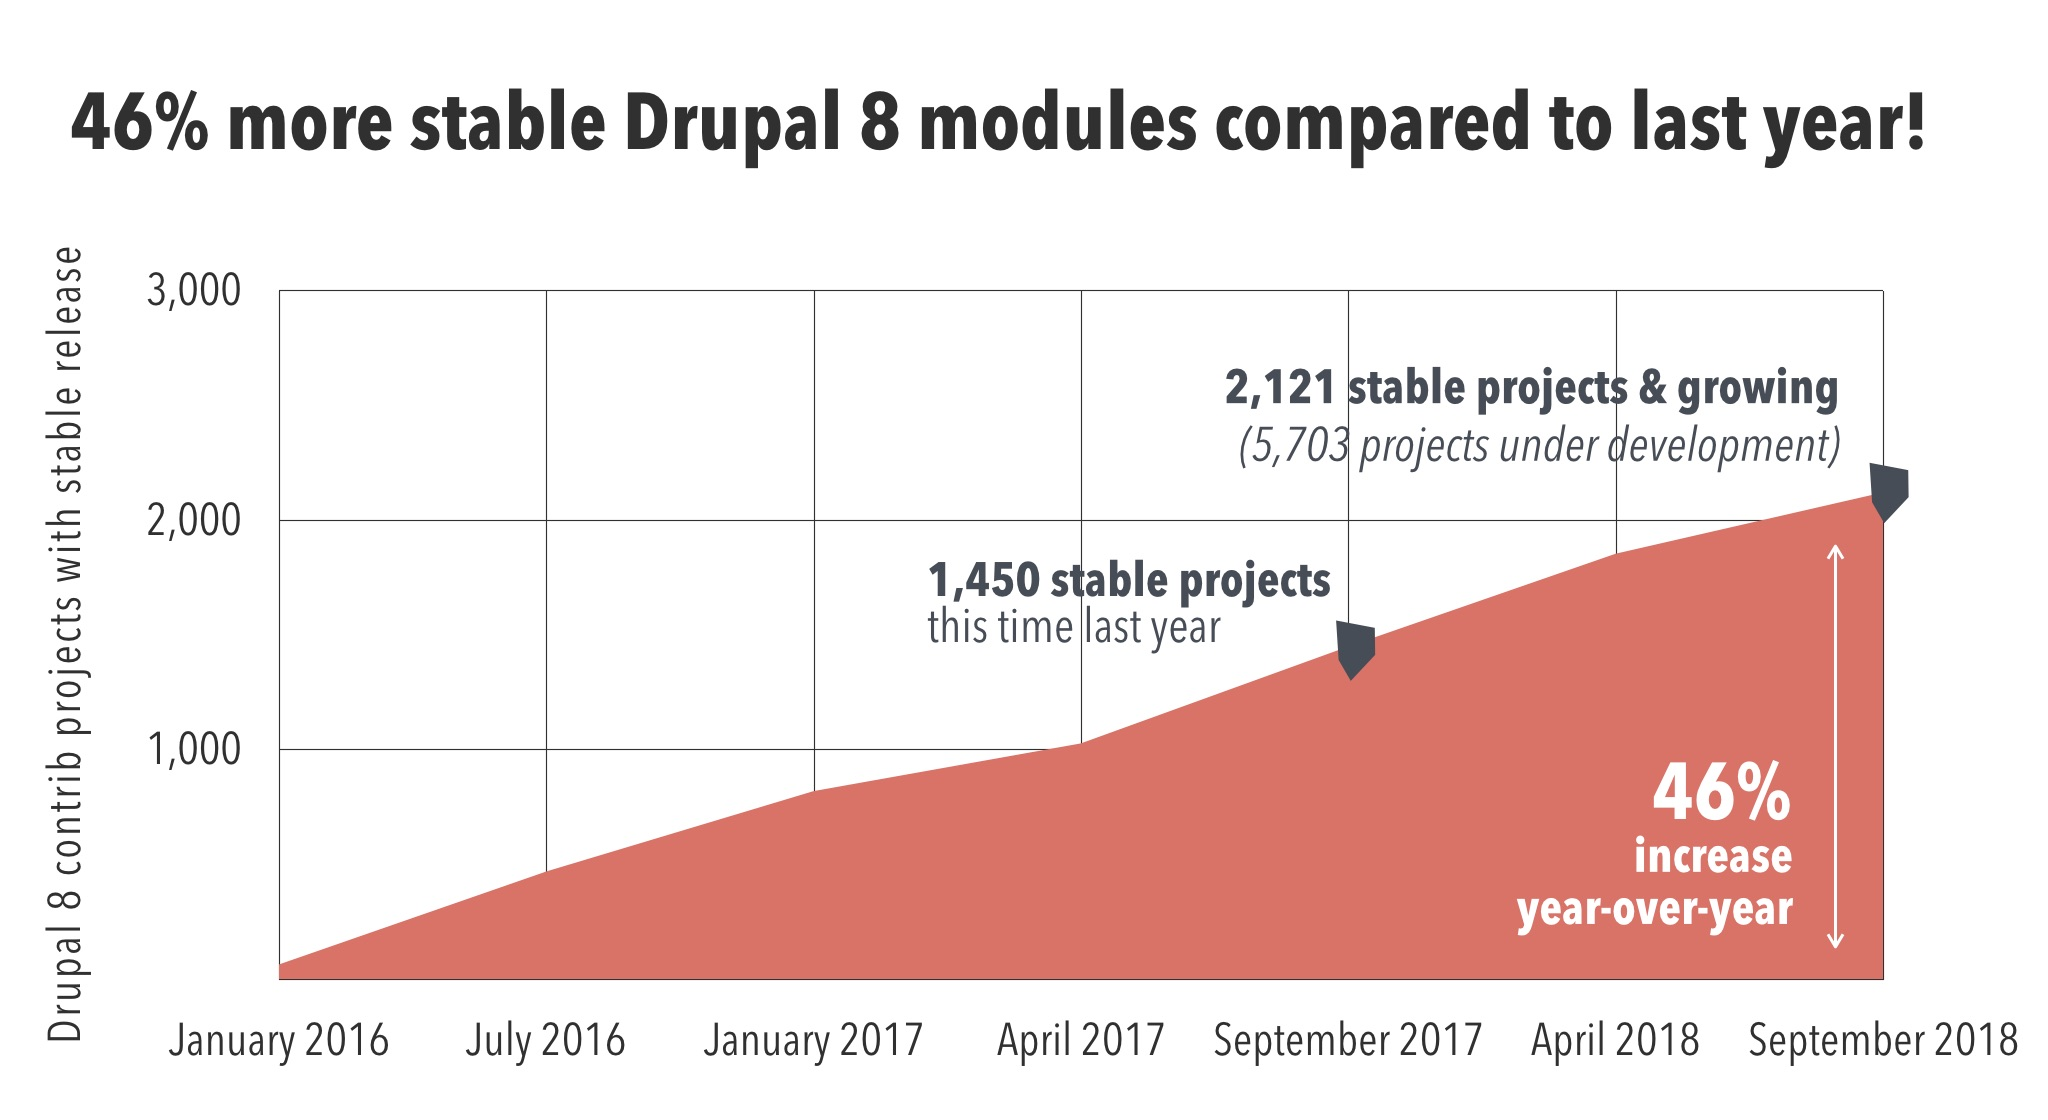 The number of stable modules for Drupal 8 is growing fast